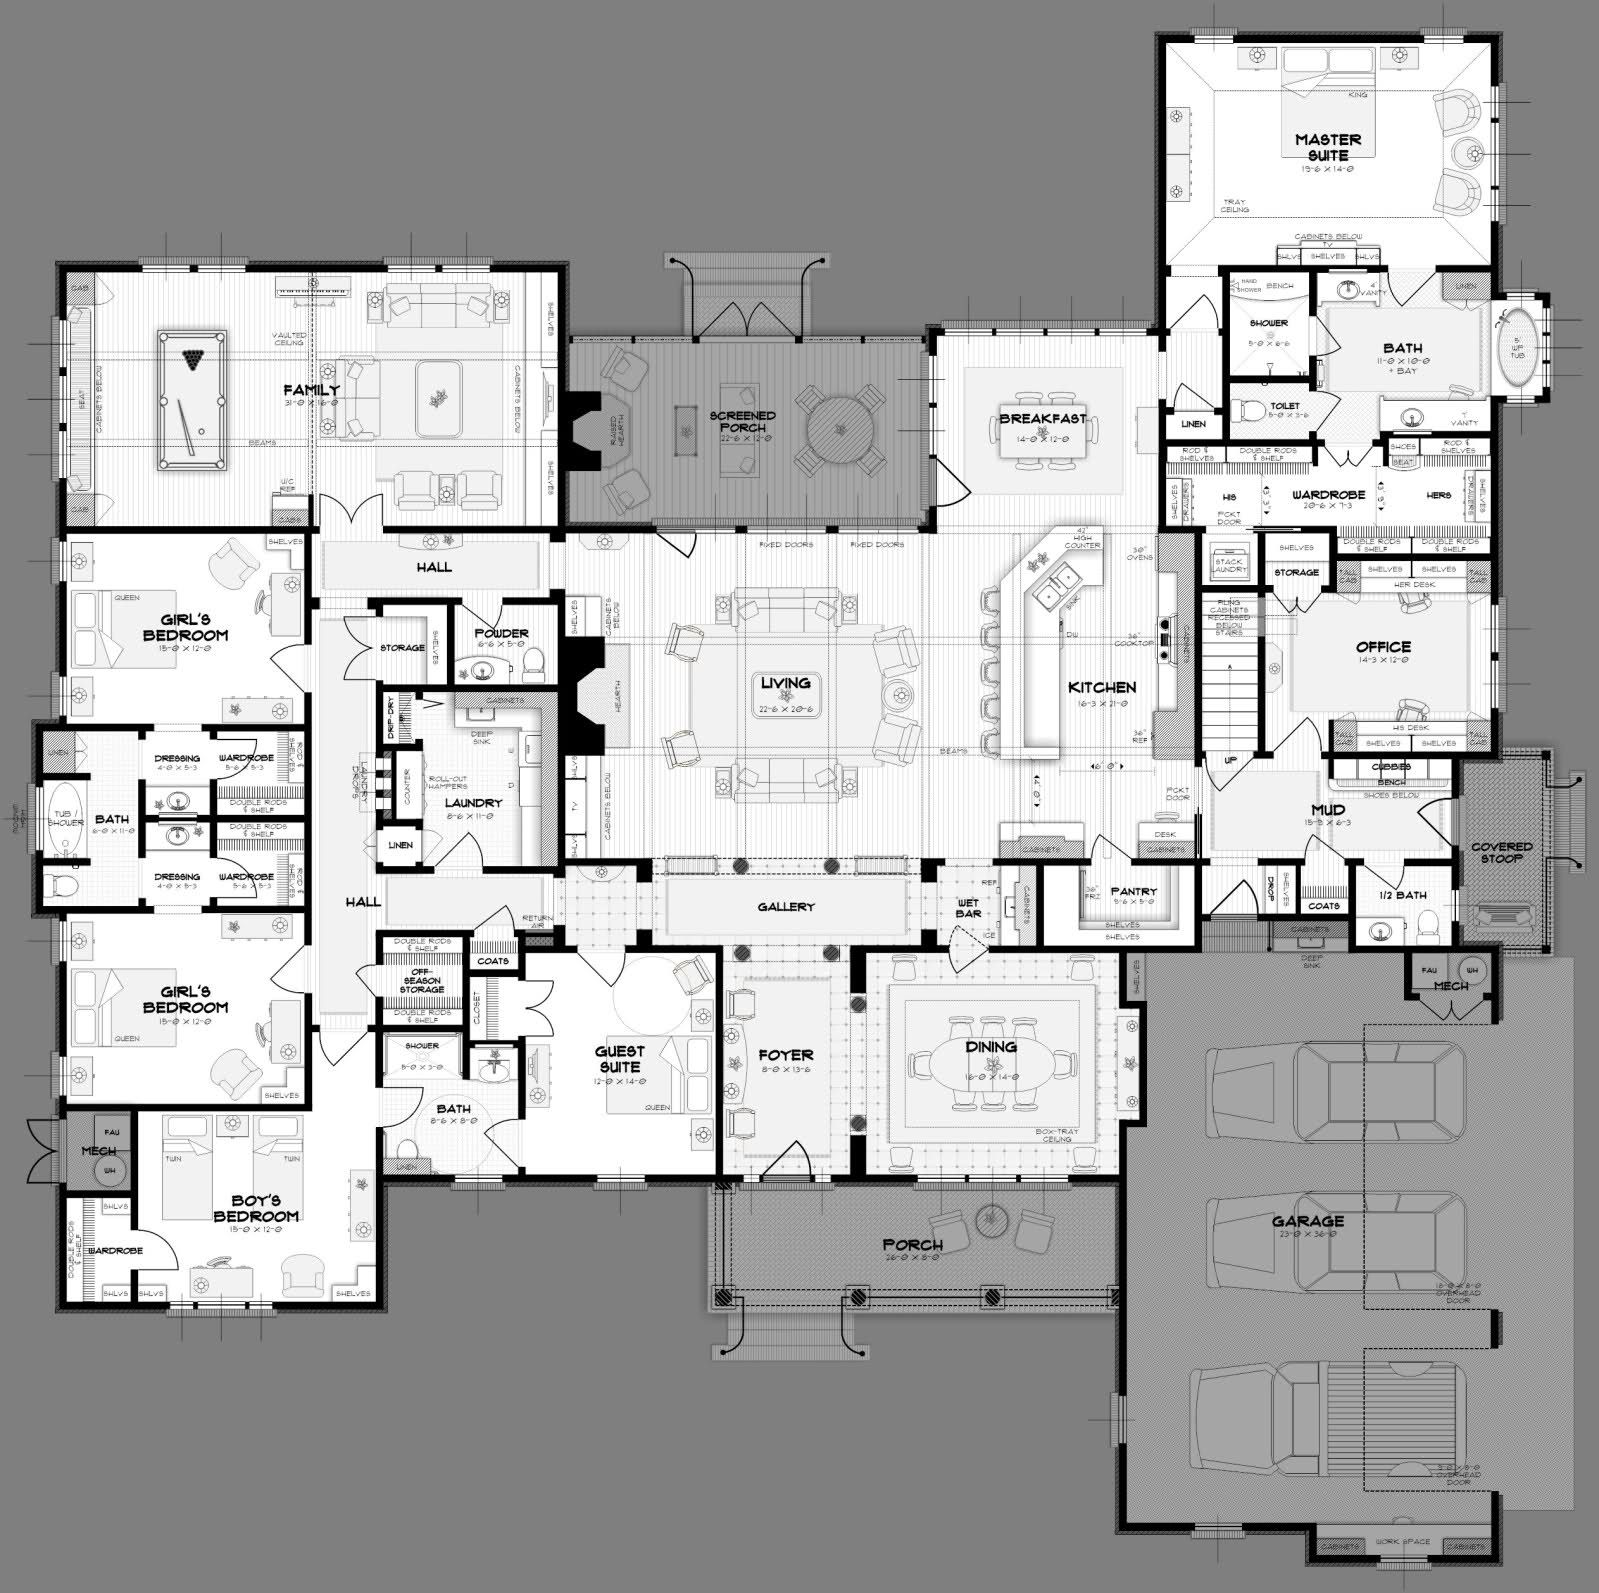 Kids Bedroom Plan big 5 bedroom house plans | my plans - help needed with bedroom